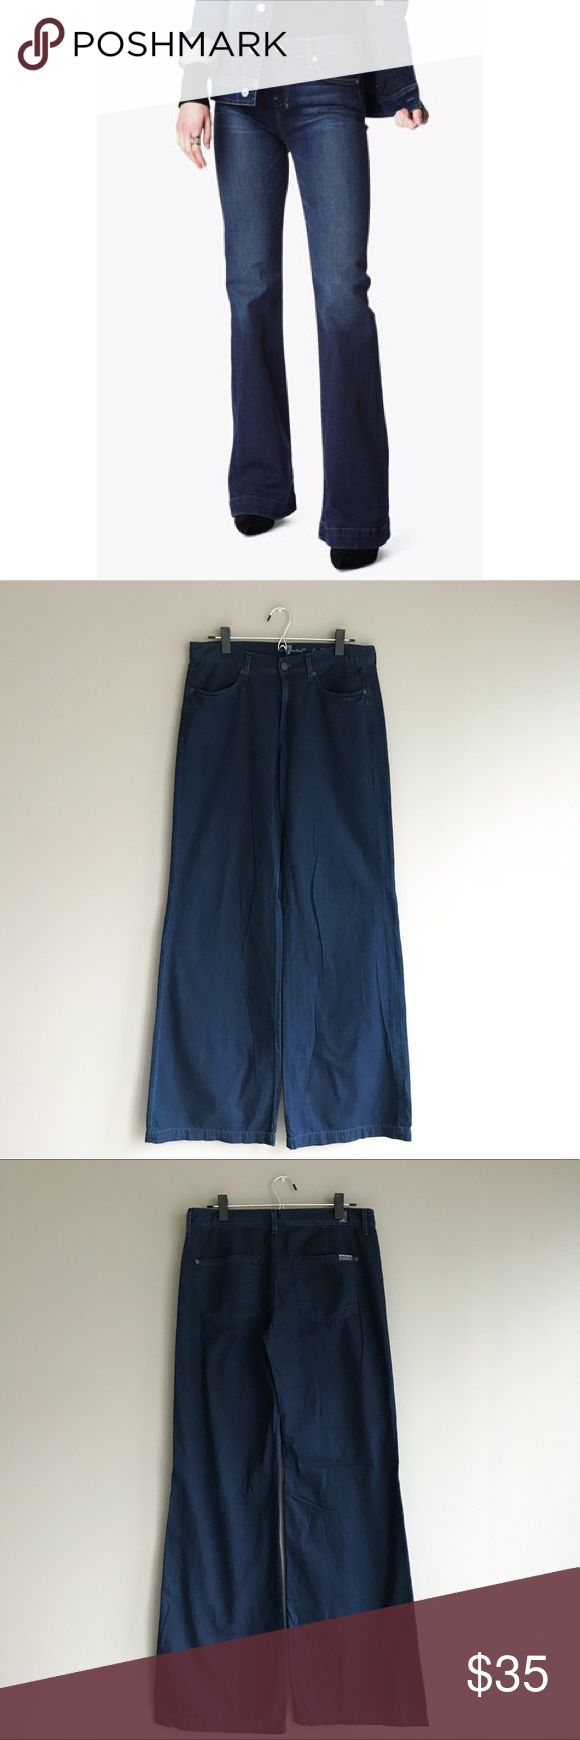 7 For All Mankind • wide leg trouser Beautifully flared jean-styled trousers from 7 For All Mankind. Fits tighter at hips then flares out for a groovy casual look. Fits like a 10, refer to measurements below. In excellent condition!  Waist: 32 in. Rise: 9½ in. Inseam: 35 in. Leg opening: 24 in.  Material: 100% cotton Origin: Made in Mexico Care: Machine wash cold with garment inside out. Tumble dry low. 7 For All Mankind Pants Boot Cut & Flare